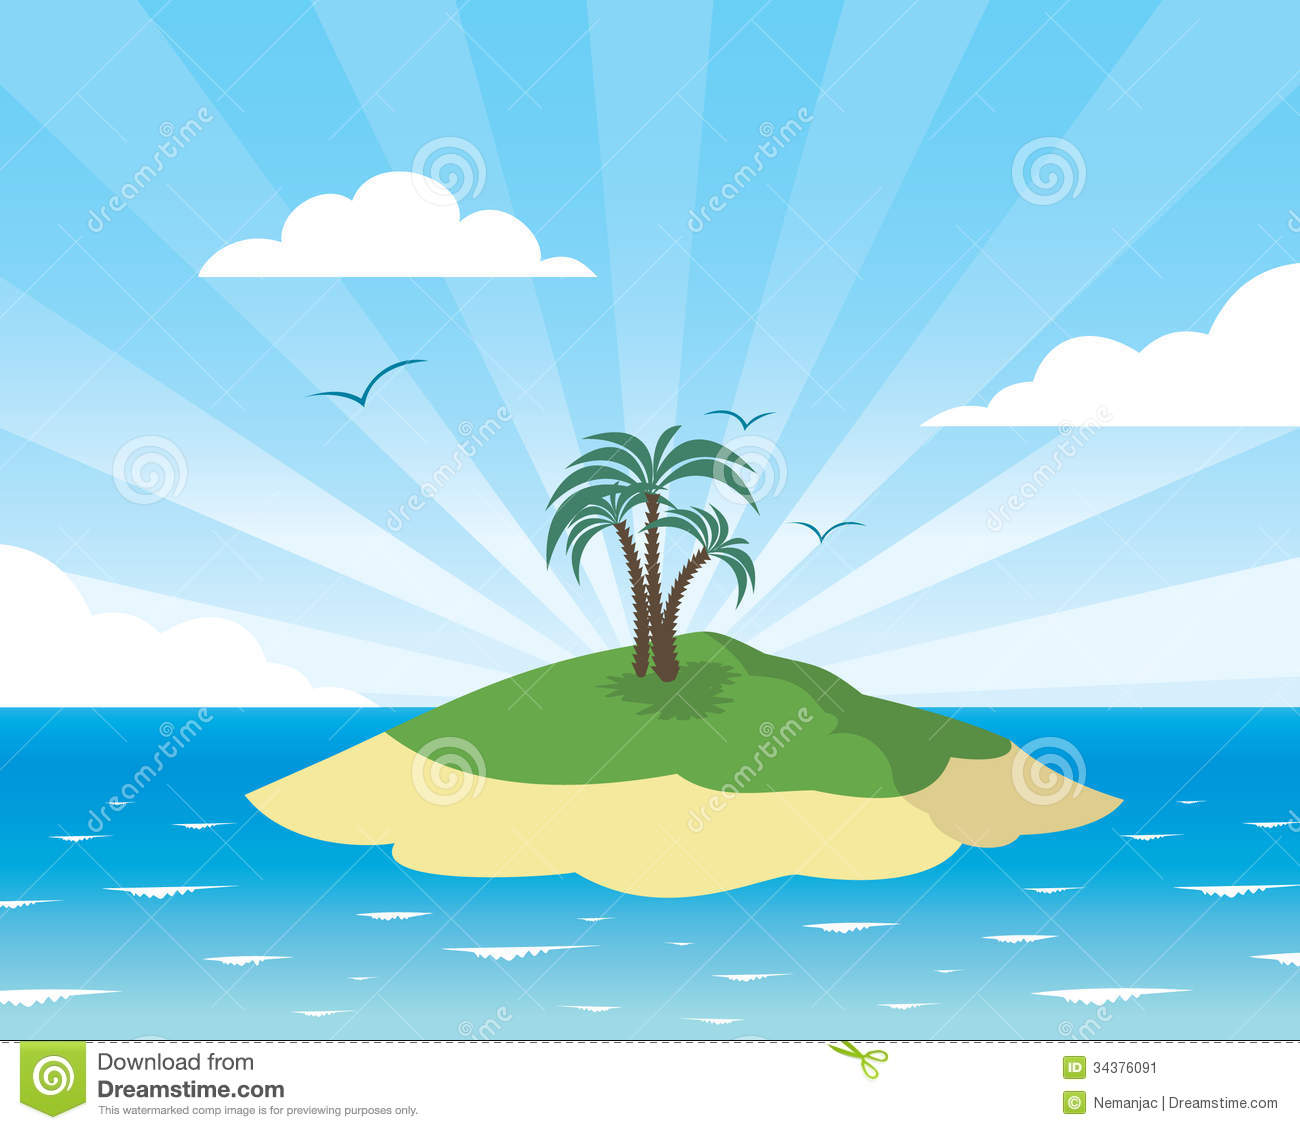 Tropical island card stock vector. Illustration of ...